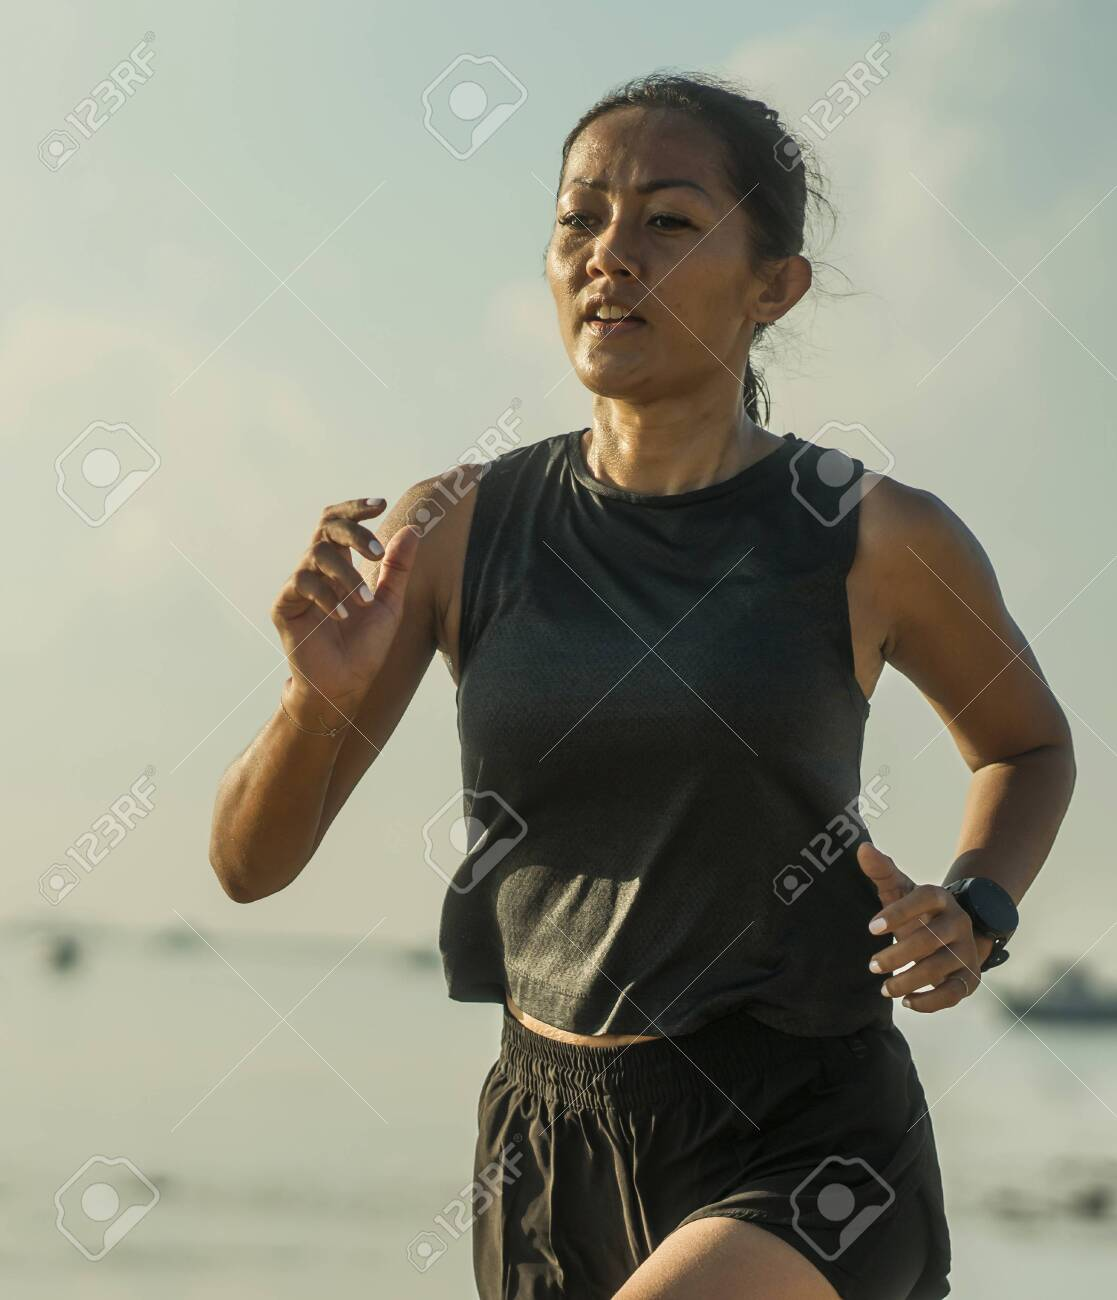 outdoors fitness portrait of young attractive and athletic Asian Indonesian woman in her 40s running on the beach doing intervals workout in athlete training concept and healthy lifestyle - 140318296